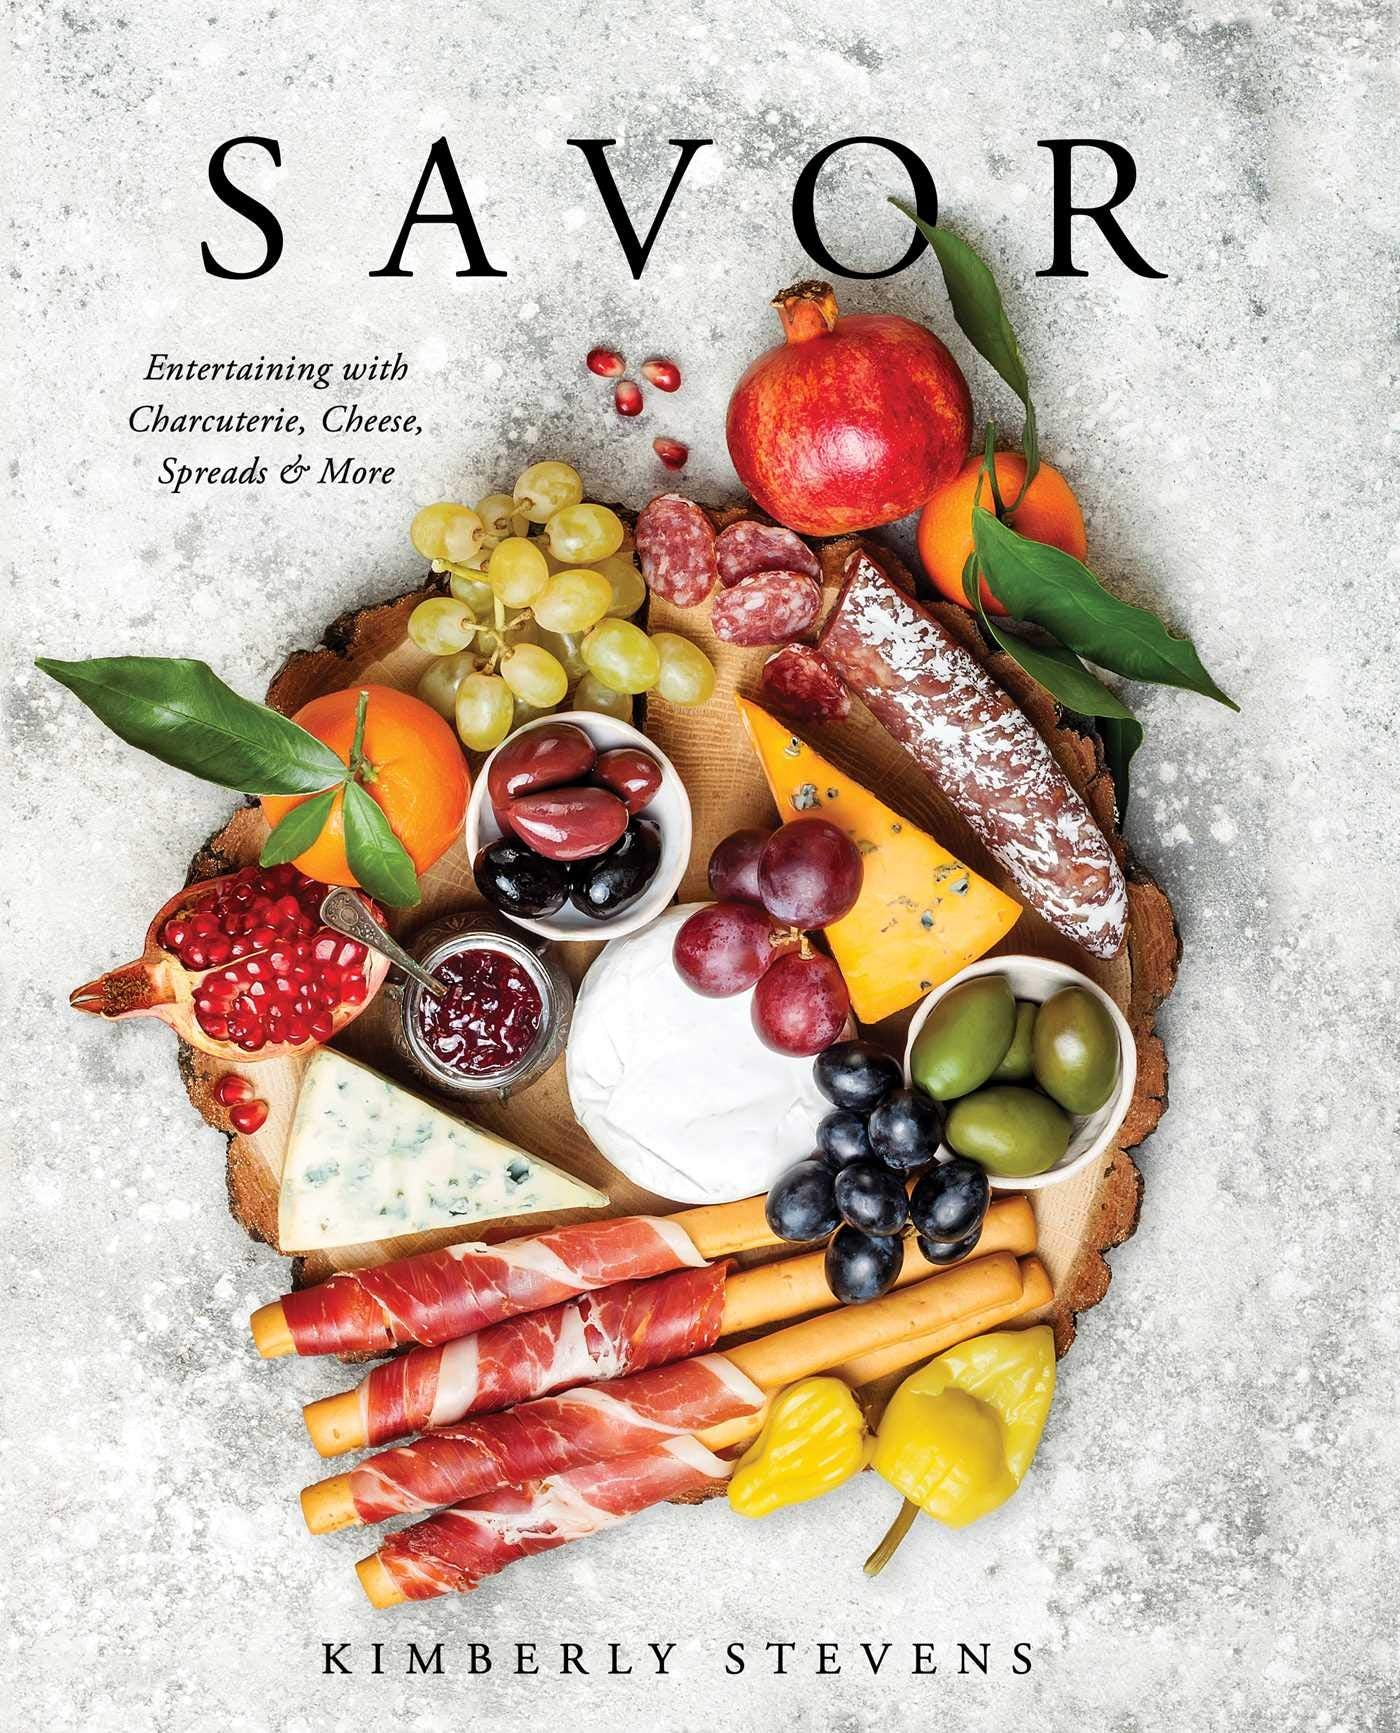 Book - Savor: Entertaining with Charcuterie, Cheese, Spreads & More